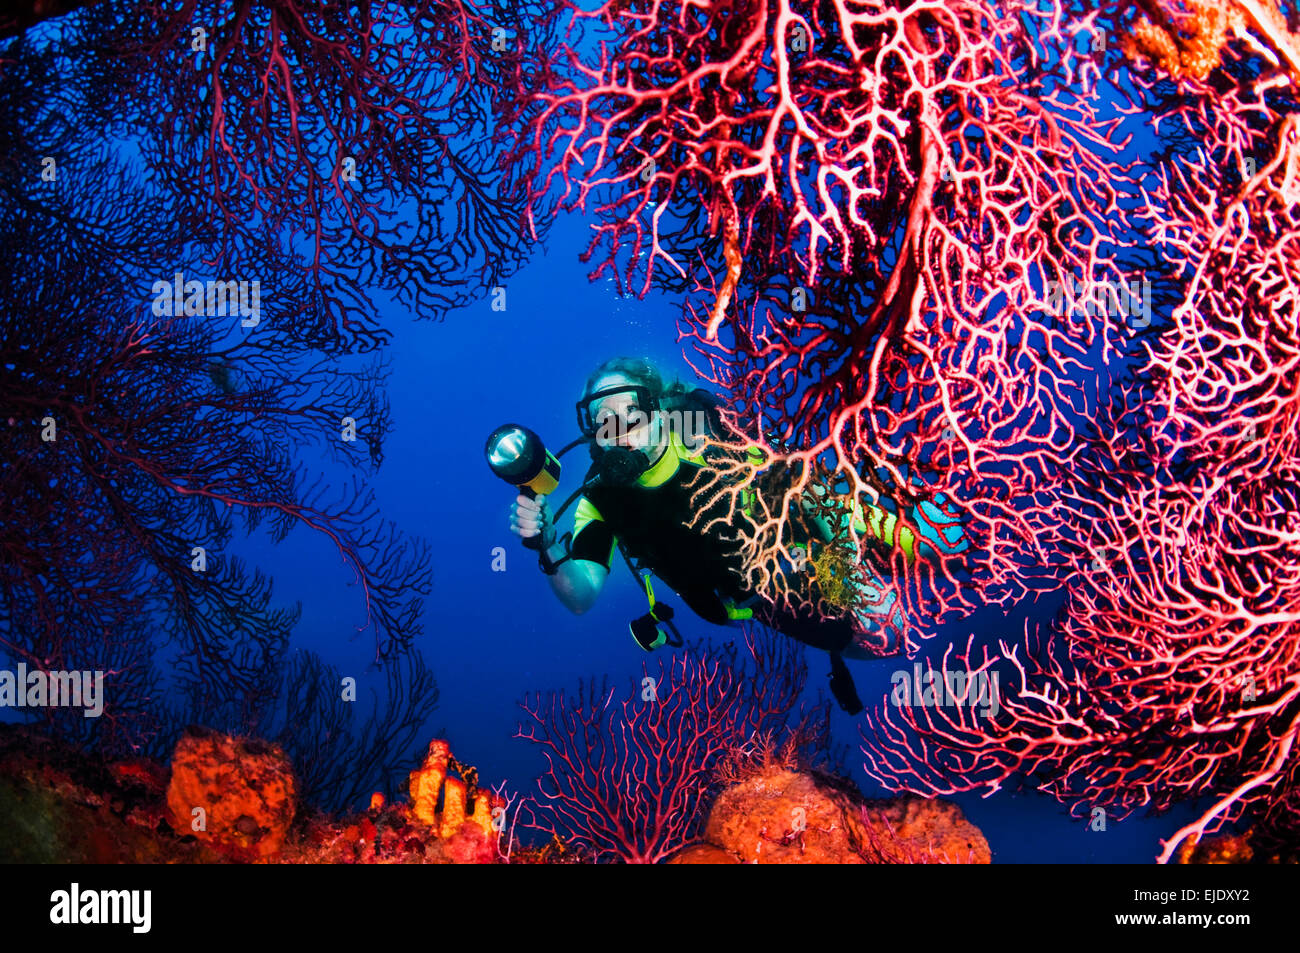 A diver explores sea fans growing on Lesleen M freighter wreck off Castries, St. Lucia. - Stock Image